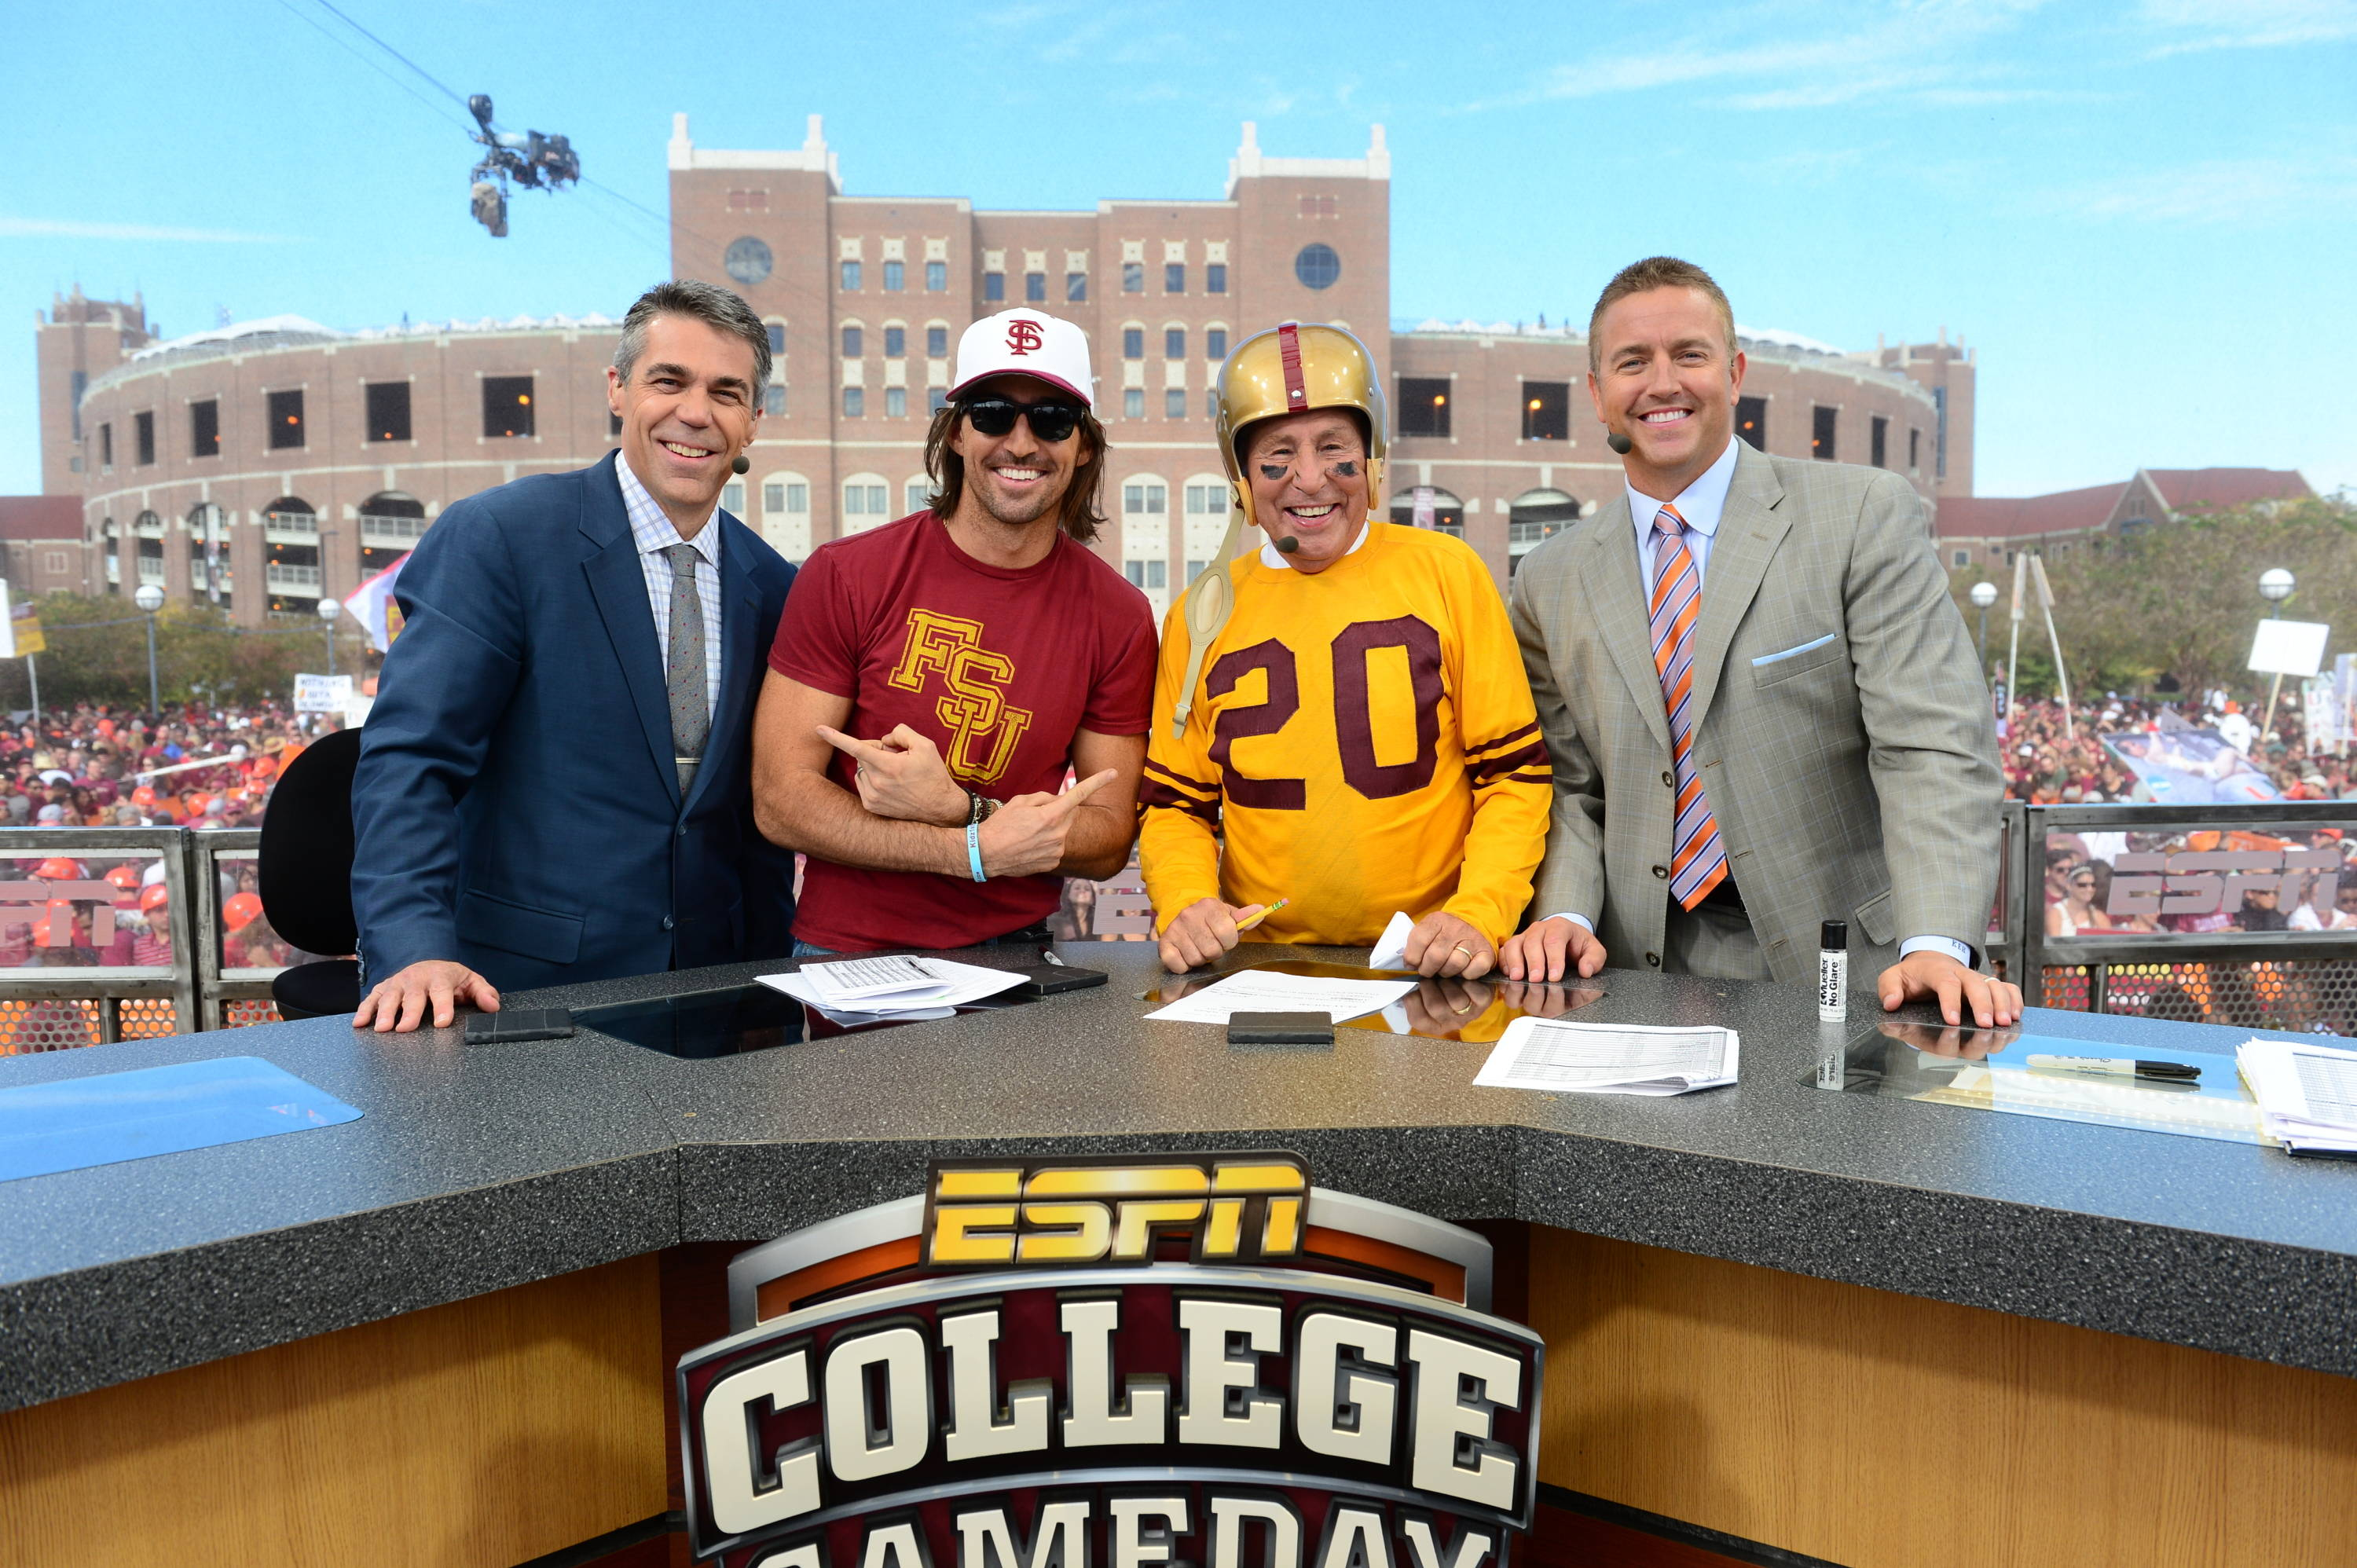 Tallahassee, FL - November 2, 2013 - Doak Campbell Stadium: Chris Fowler, Jake Owen, Lee Corso and Kirk Herbstreit on the set of College GameDay Built by the Home Depot